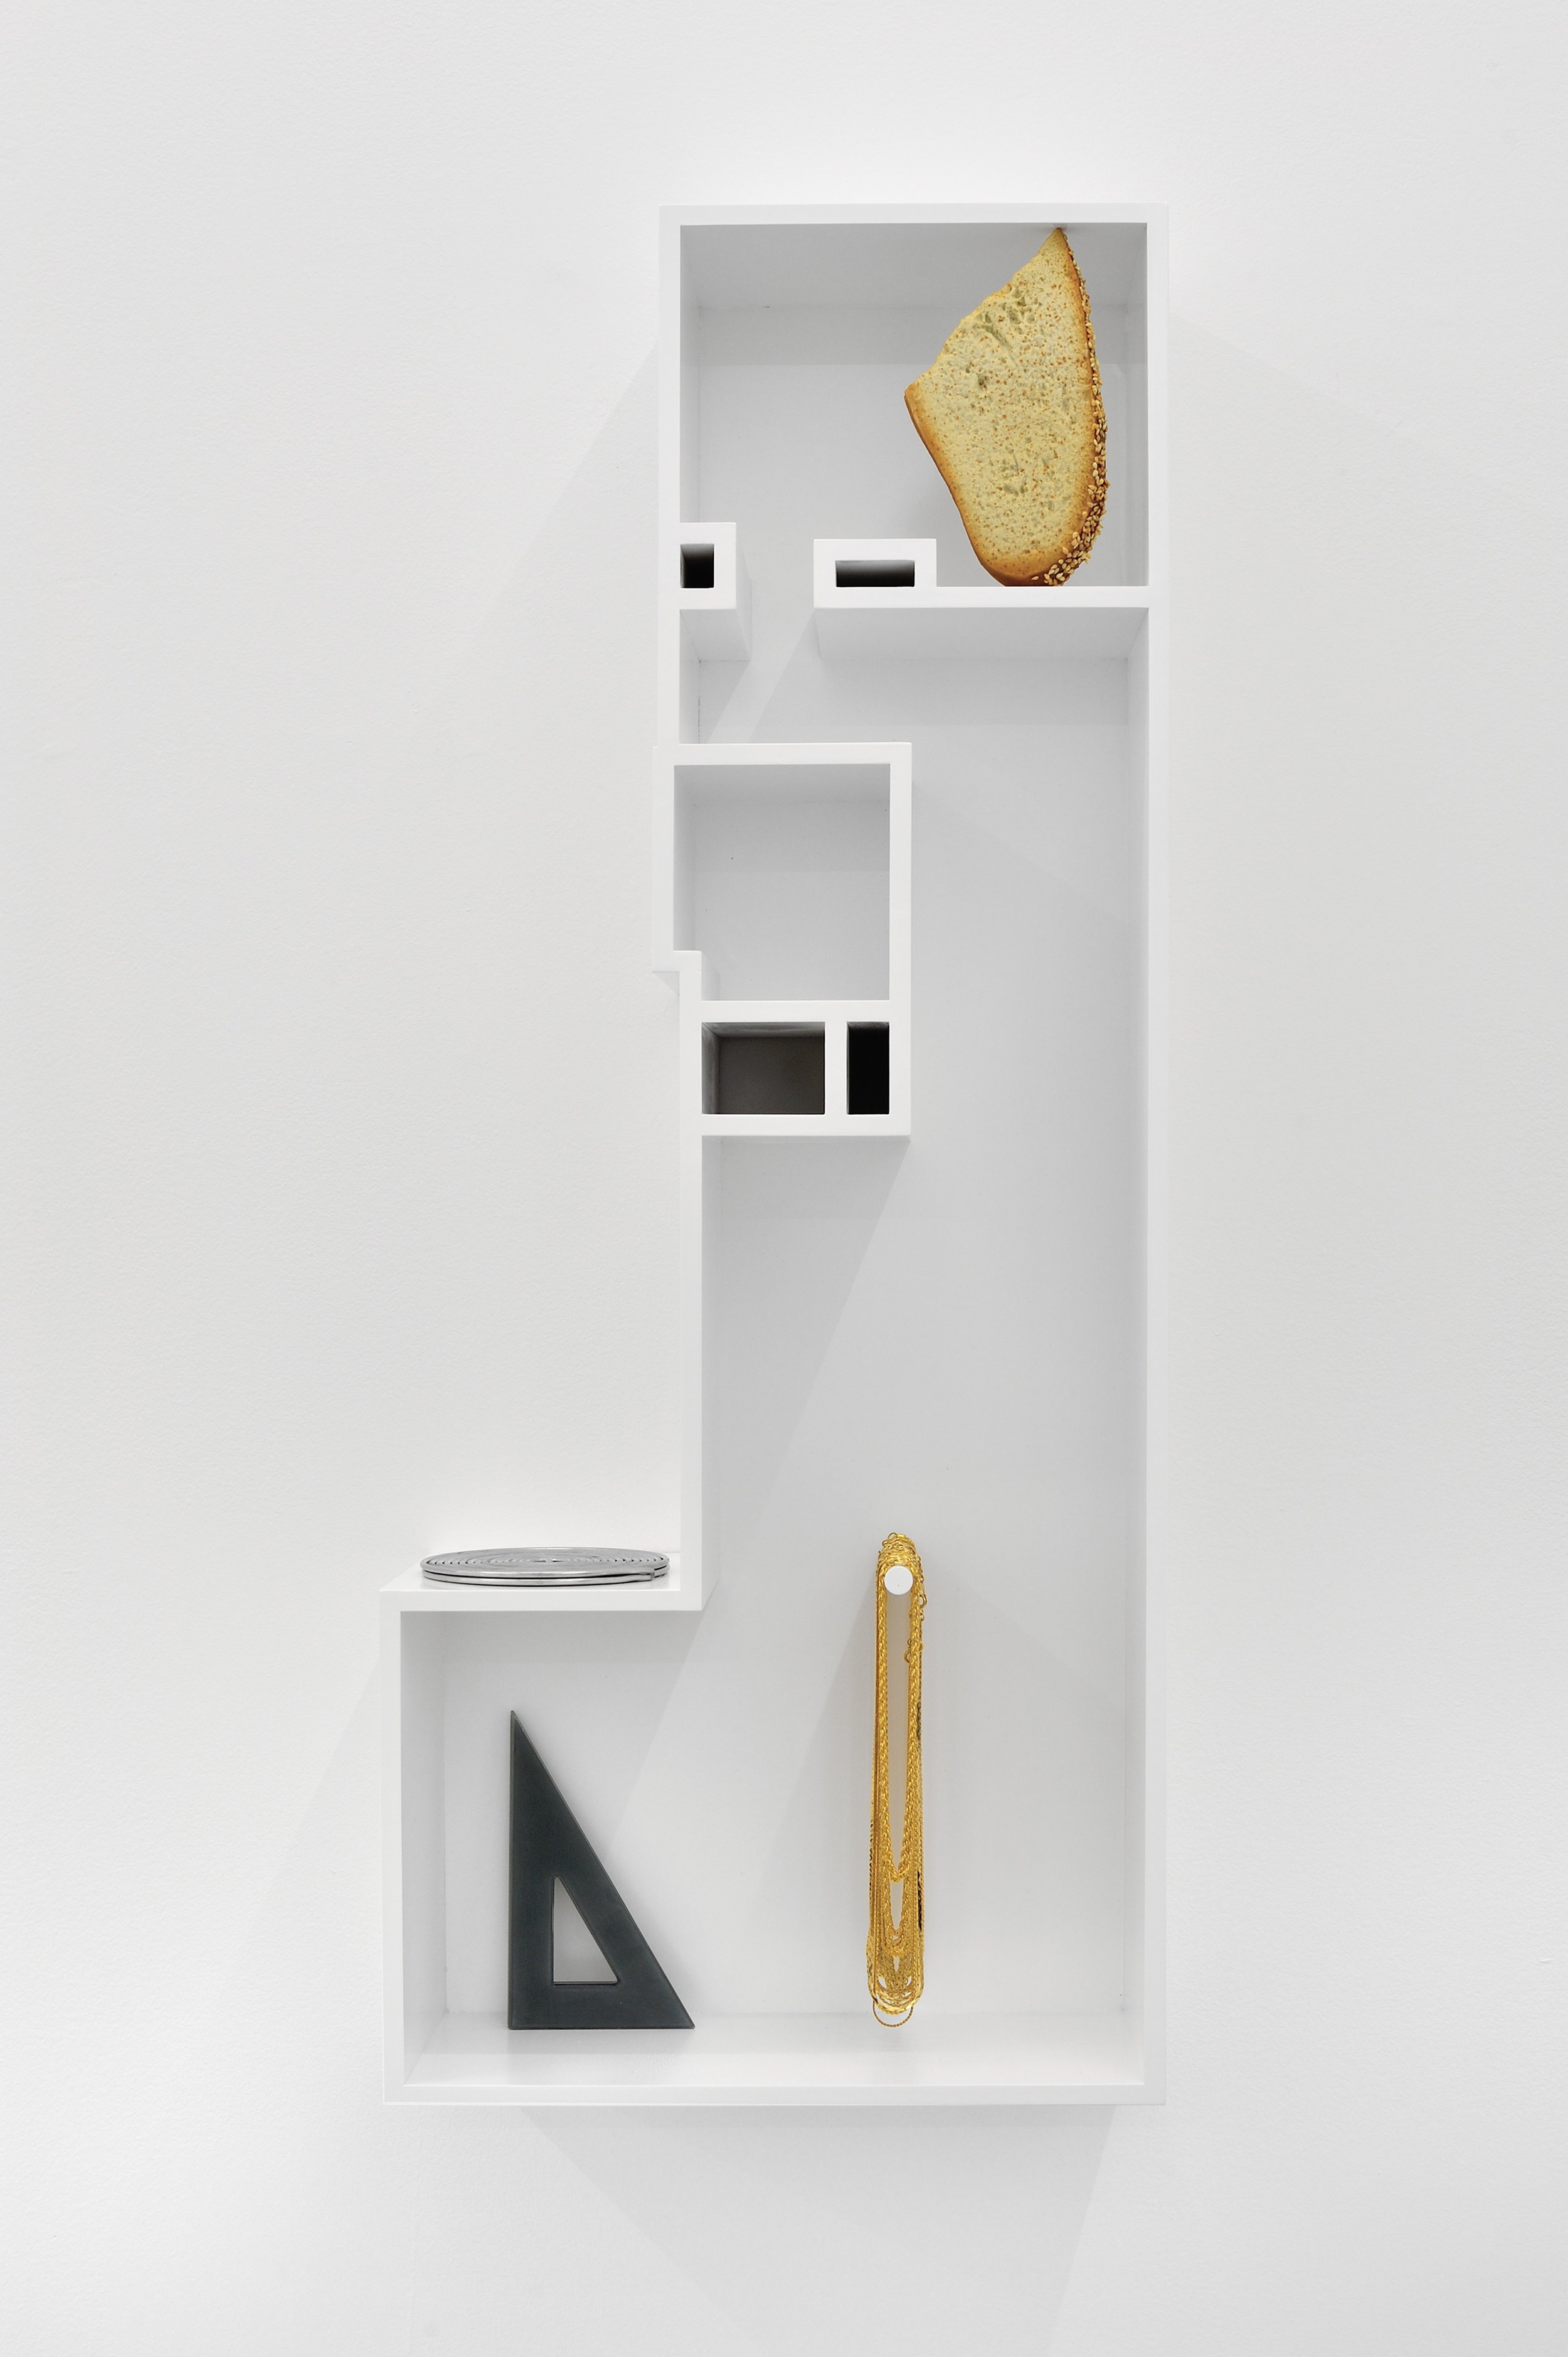 Untitled Model (BREAD AND TRIANGLES), 2015 MDF, poplar, enamel paint, artificial slice of bread, armature wire, plastic triangles, goldtone vintage chains 86,7 x 35,5 x 16,5 cm - 34 1/8 x 14 x 6 1/2 inches